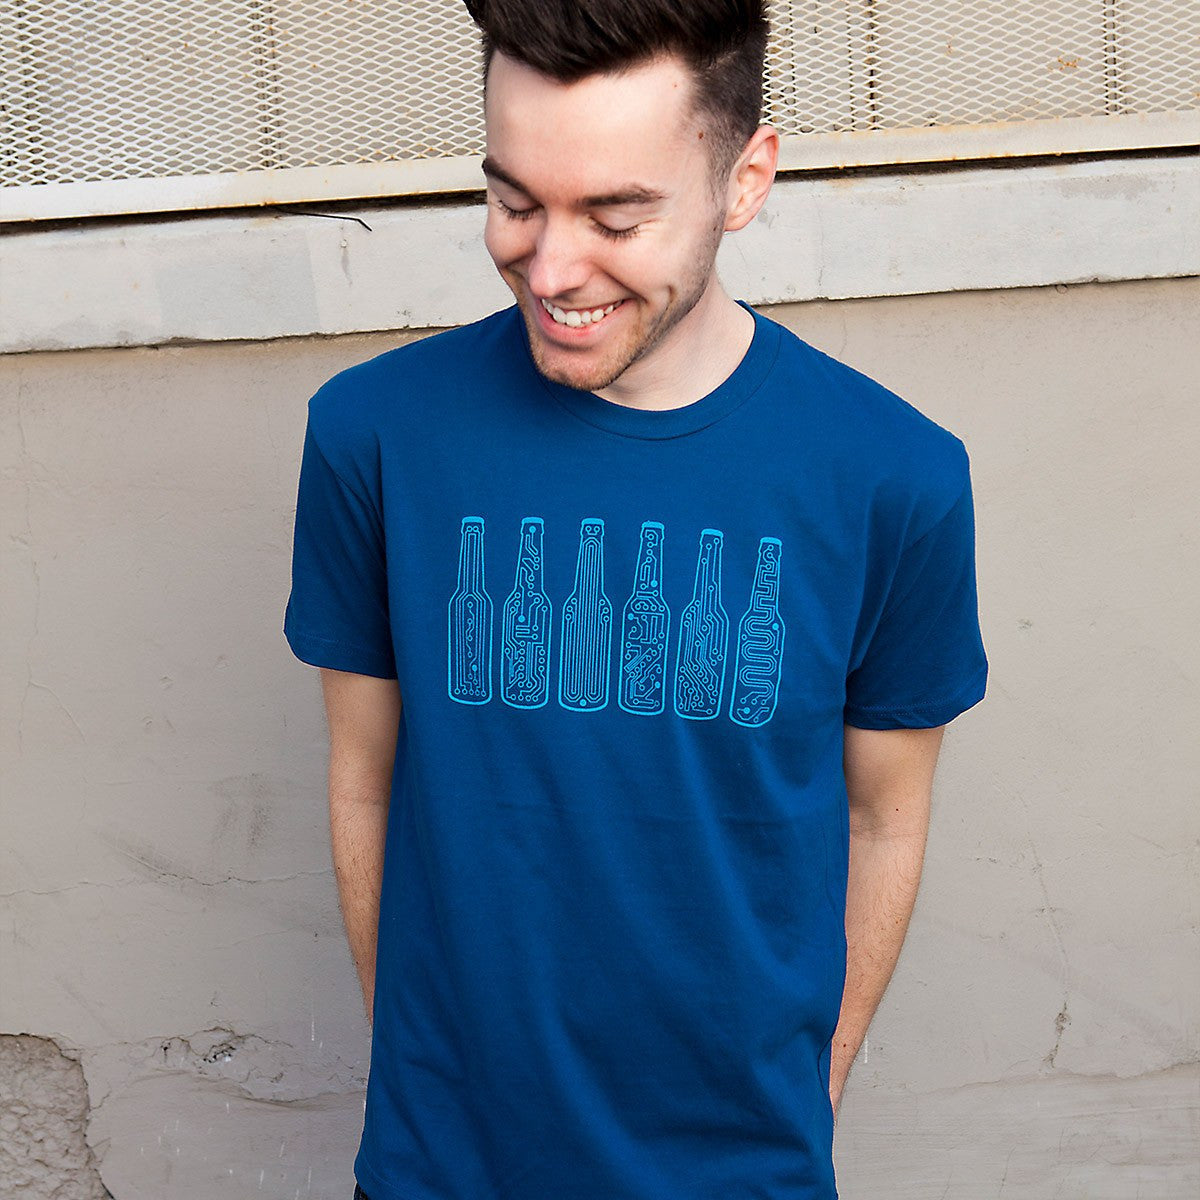 02d7bd39d40 BAR CODE Graphic T-Shirt - beer shirt in blue for techies and geeks